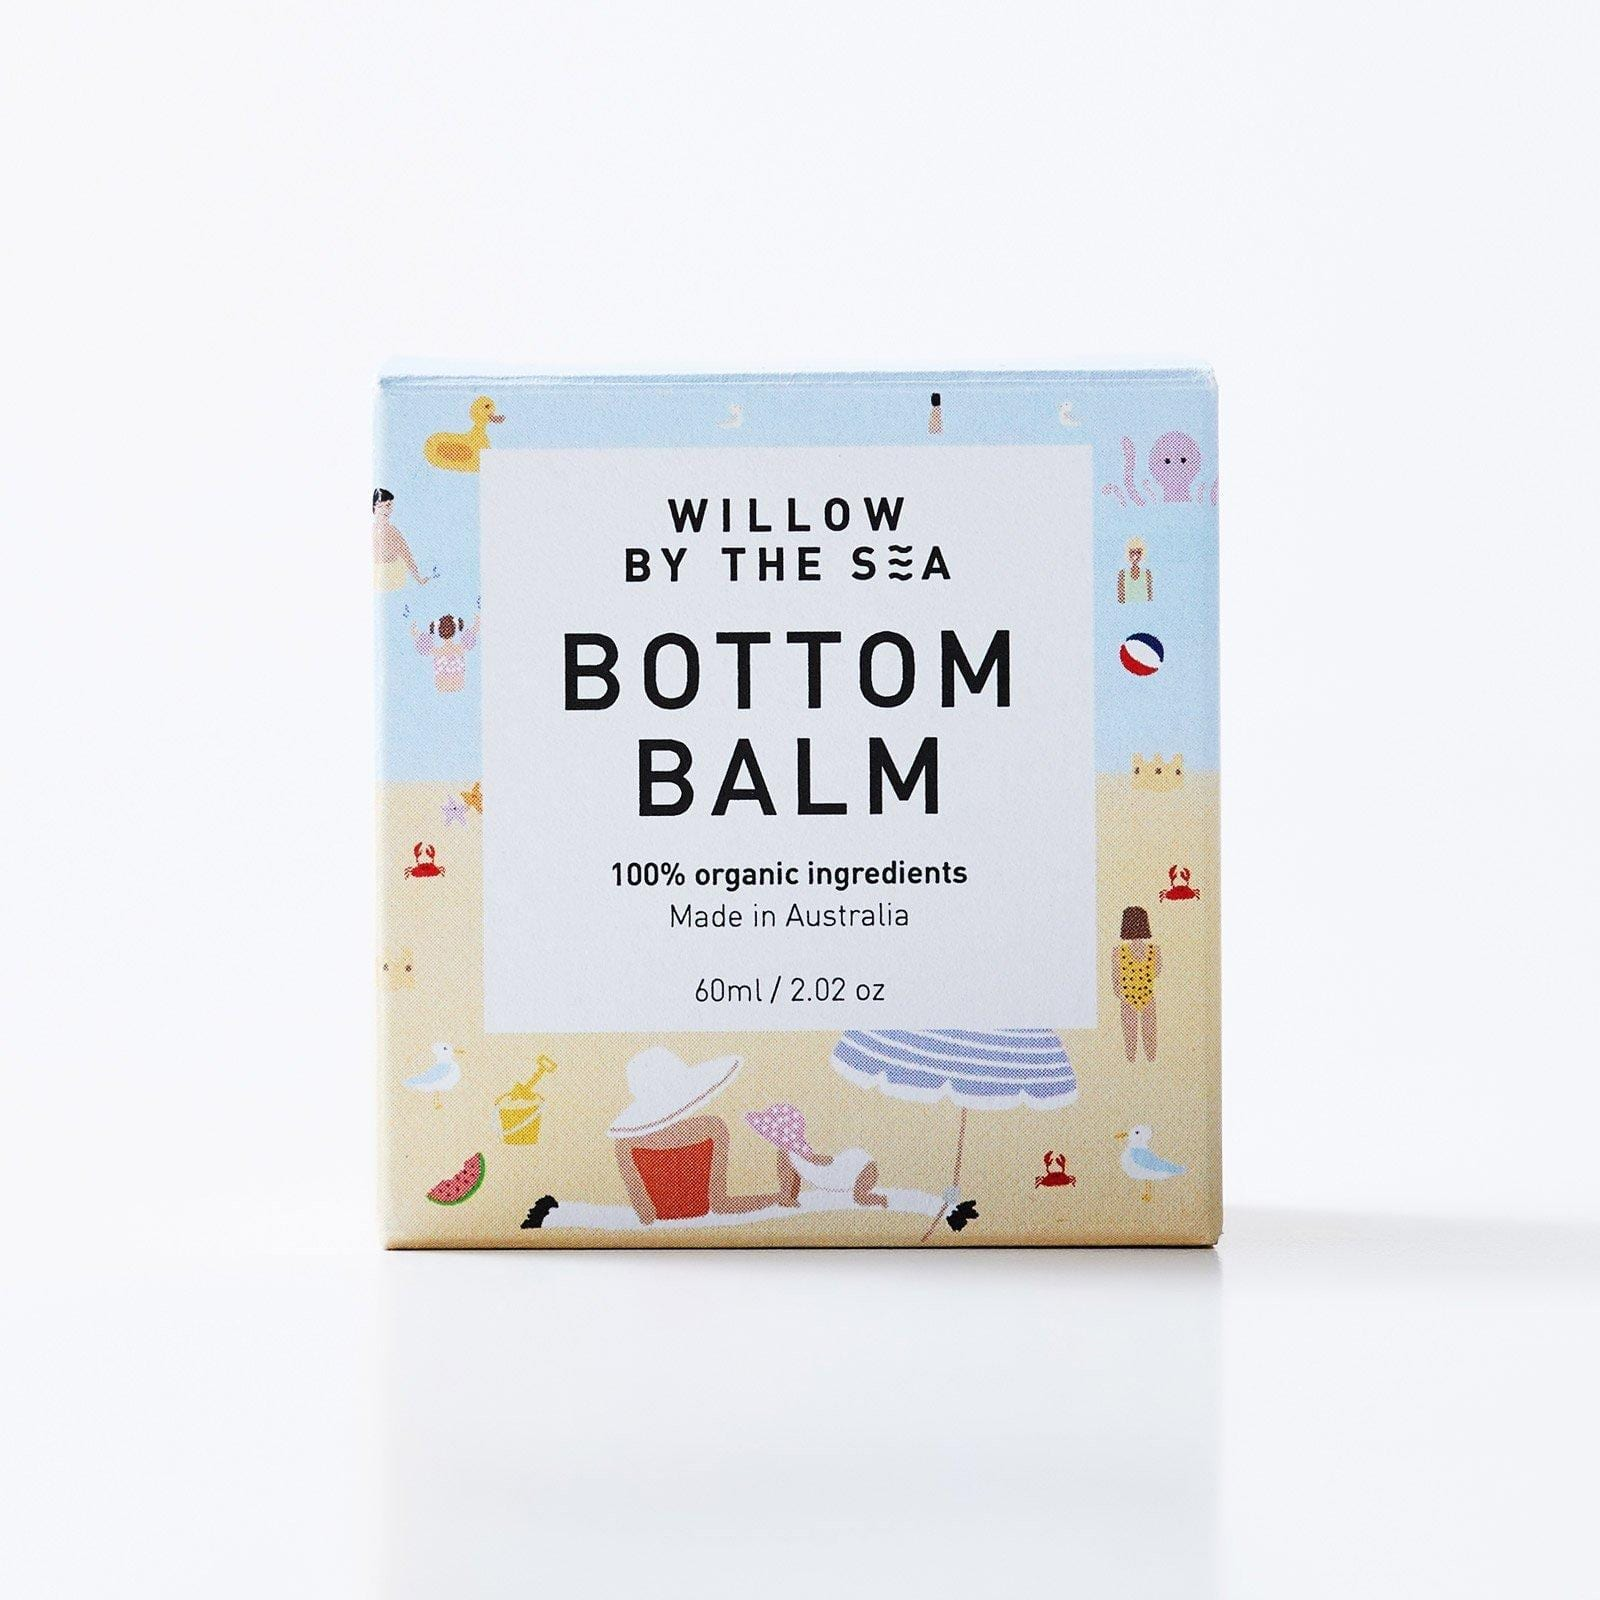 Bottom balm nappy rash cream by Willow by the Sea all natural and organic made in australia